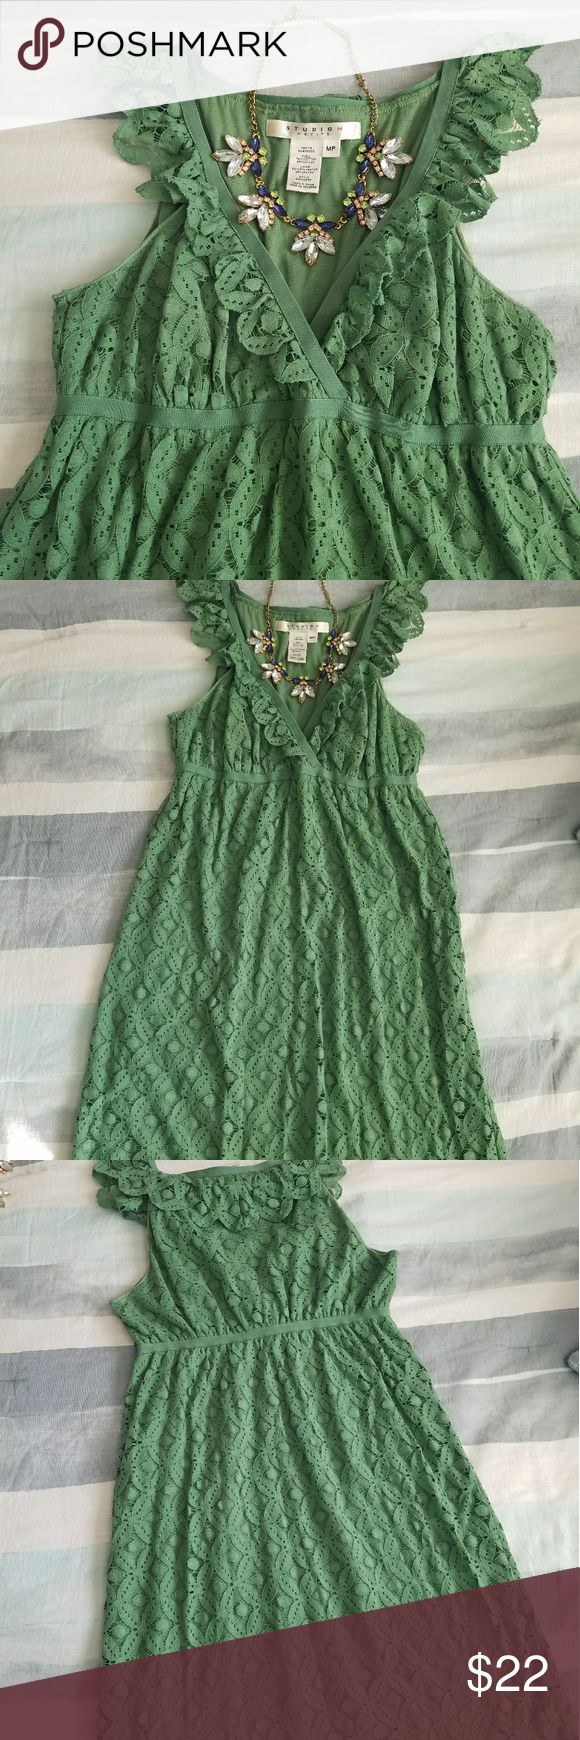 """Green Stretchy Lace Sundress size M Petite Purchased at Macys   Worn a couple times   Stretchy,  comfy fabric.    Petite dress, hits at the knee (and I am 5'4"""")  Perfect for summer parties!    Comes from a smoke free home   Bundle and save!    Necklace in pics not included Studio M Dresses"""